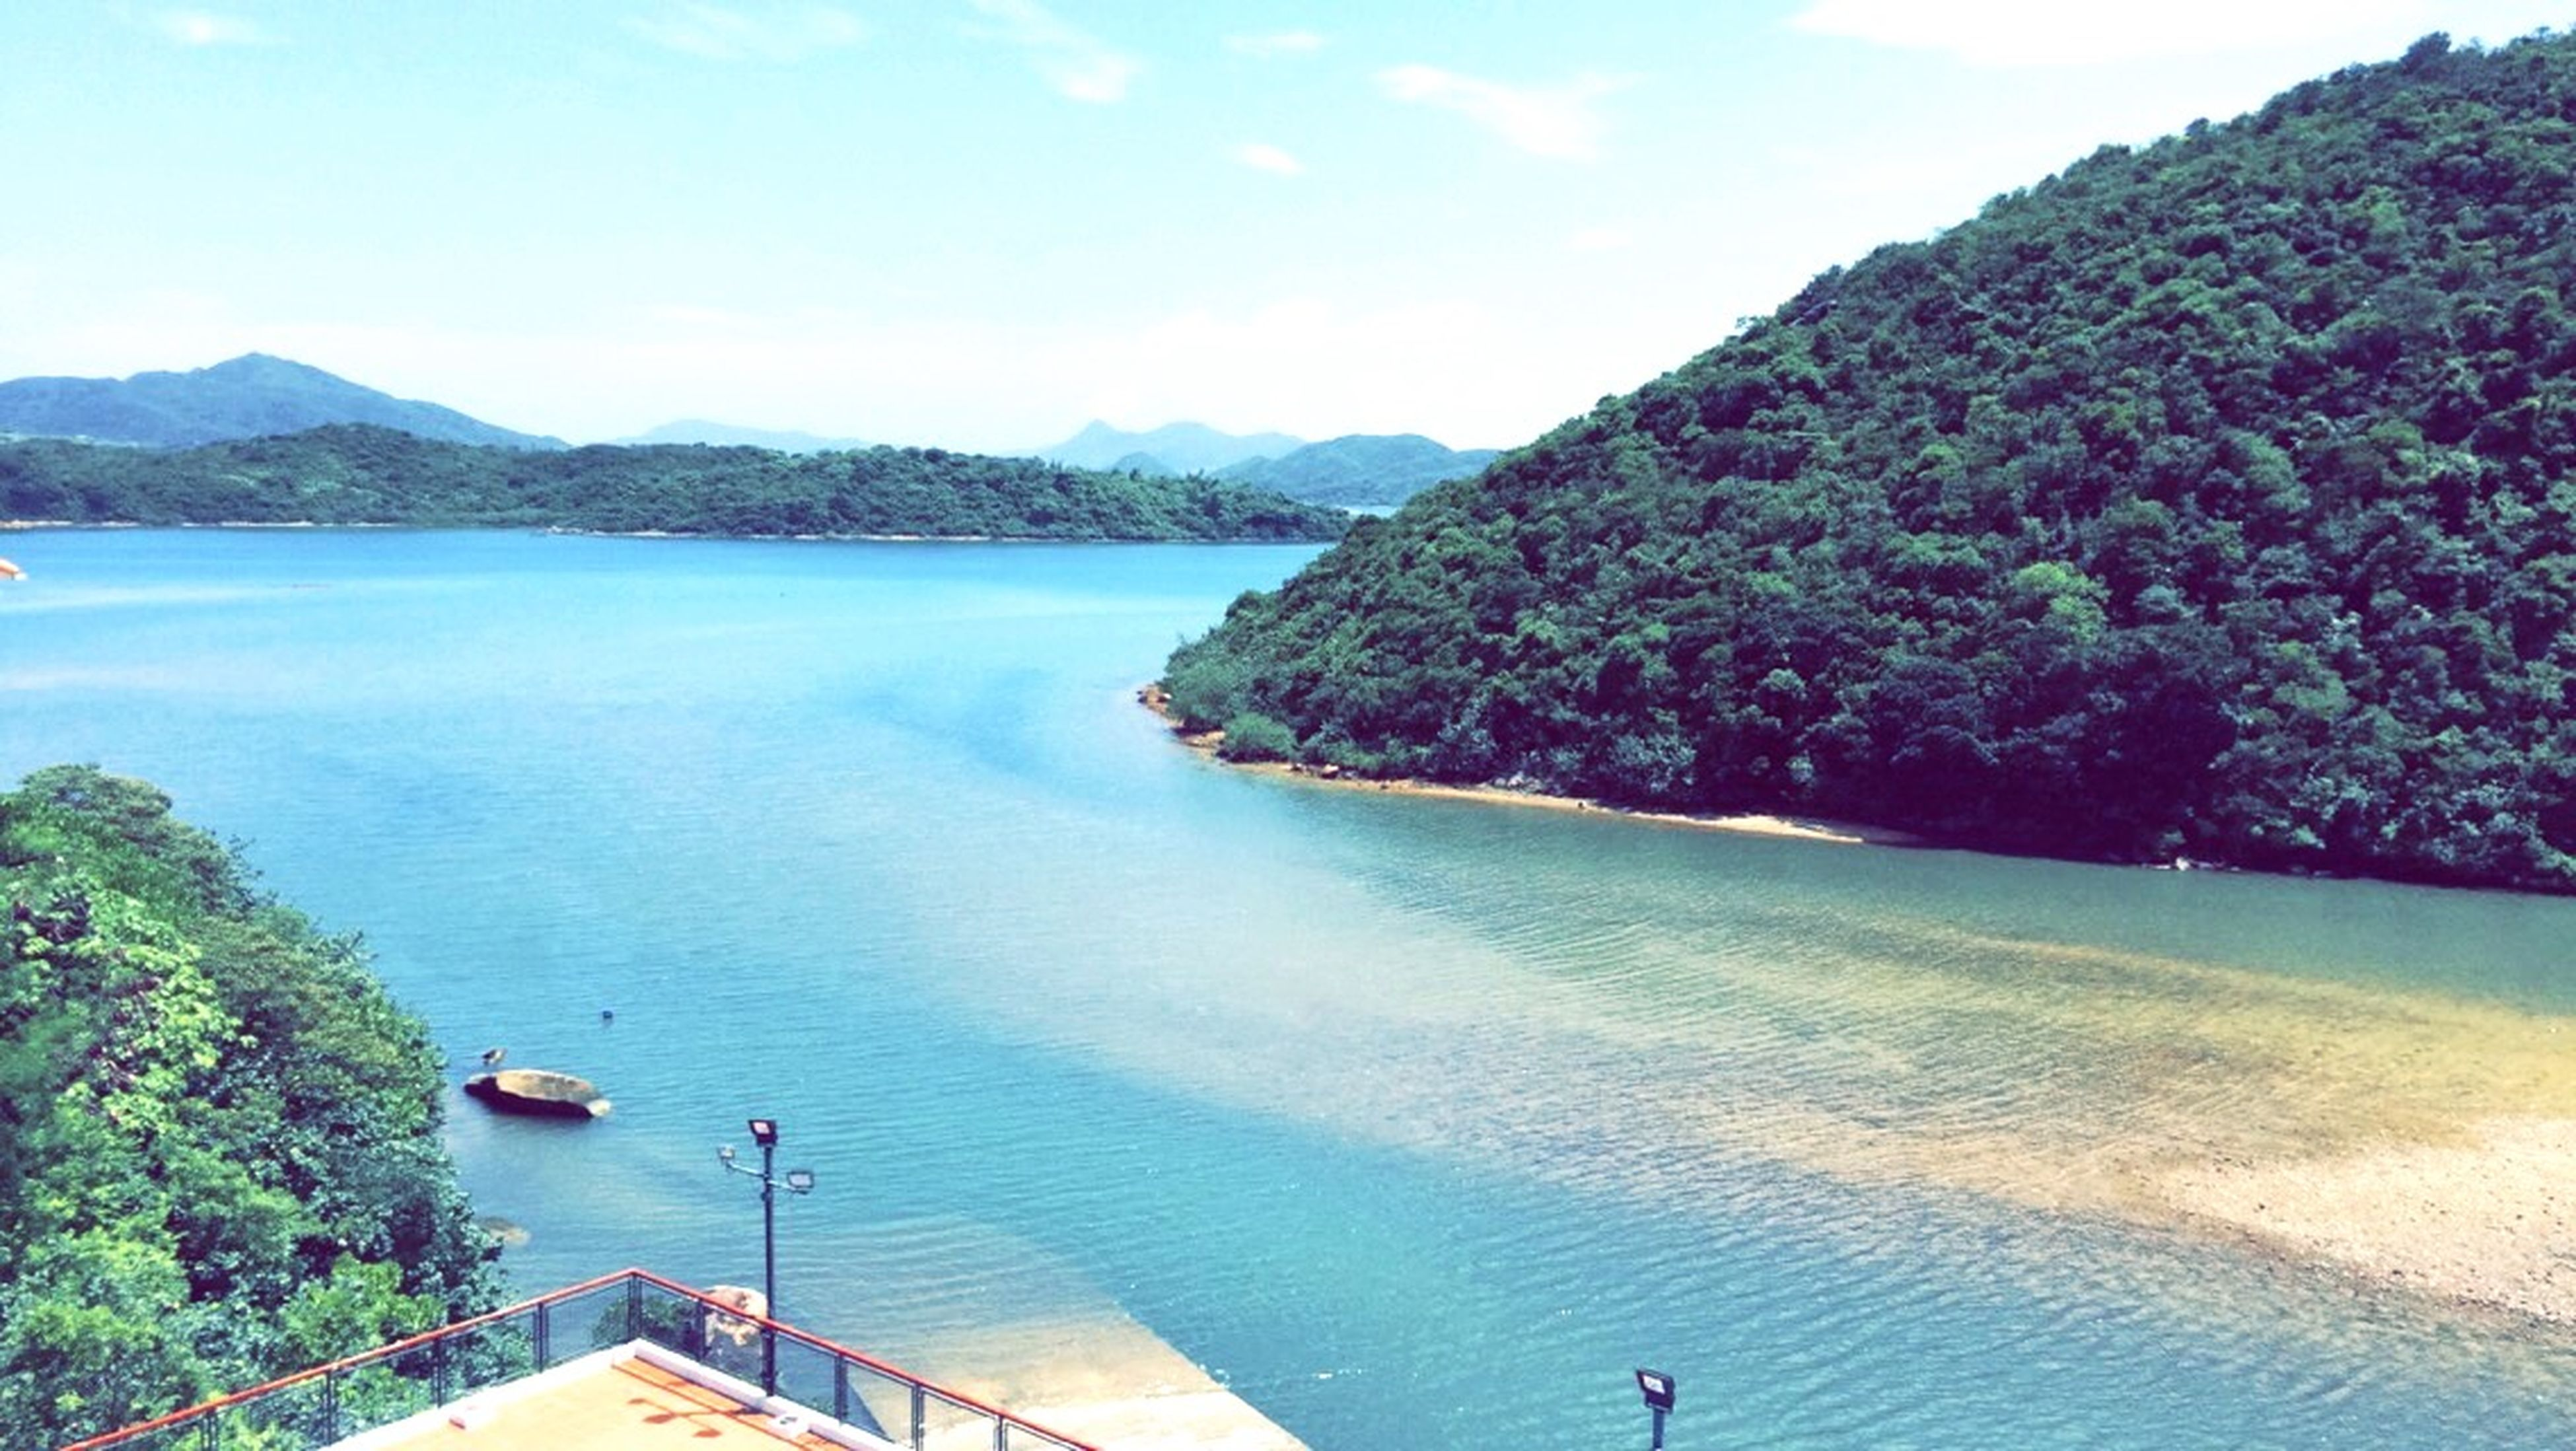 water, mountain, sea, scenics, tranquil scene, beauty in nature, tranquility, nautical vessel, sky, nature, blue, boat, tree, high angle view, idyllic, transportation, day, lake, mountain range, beach